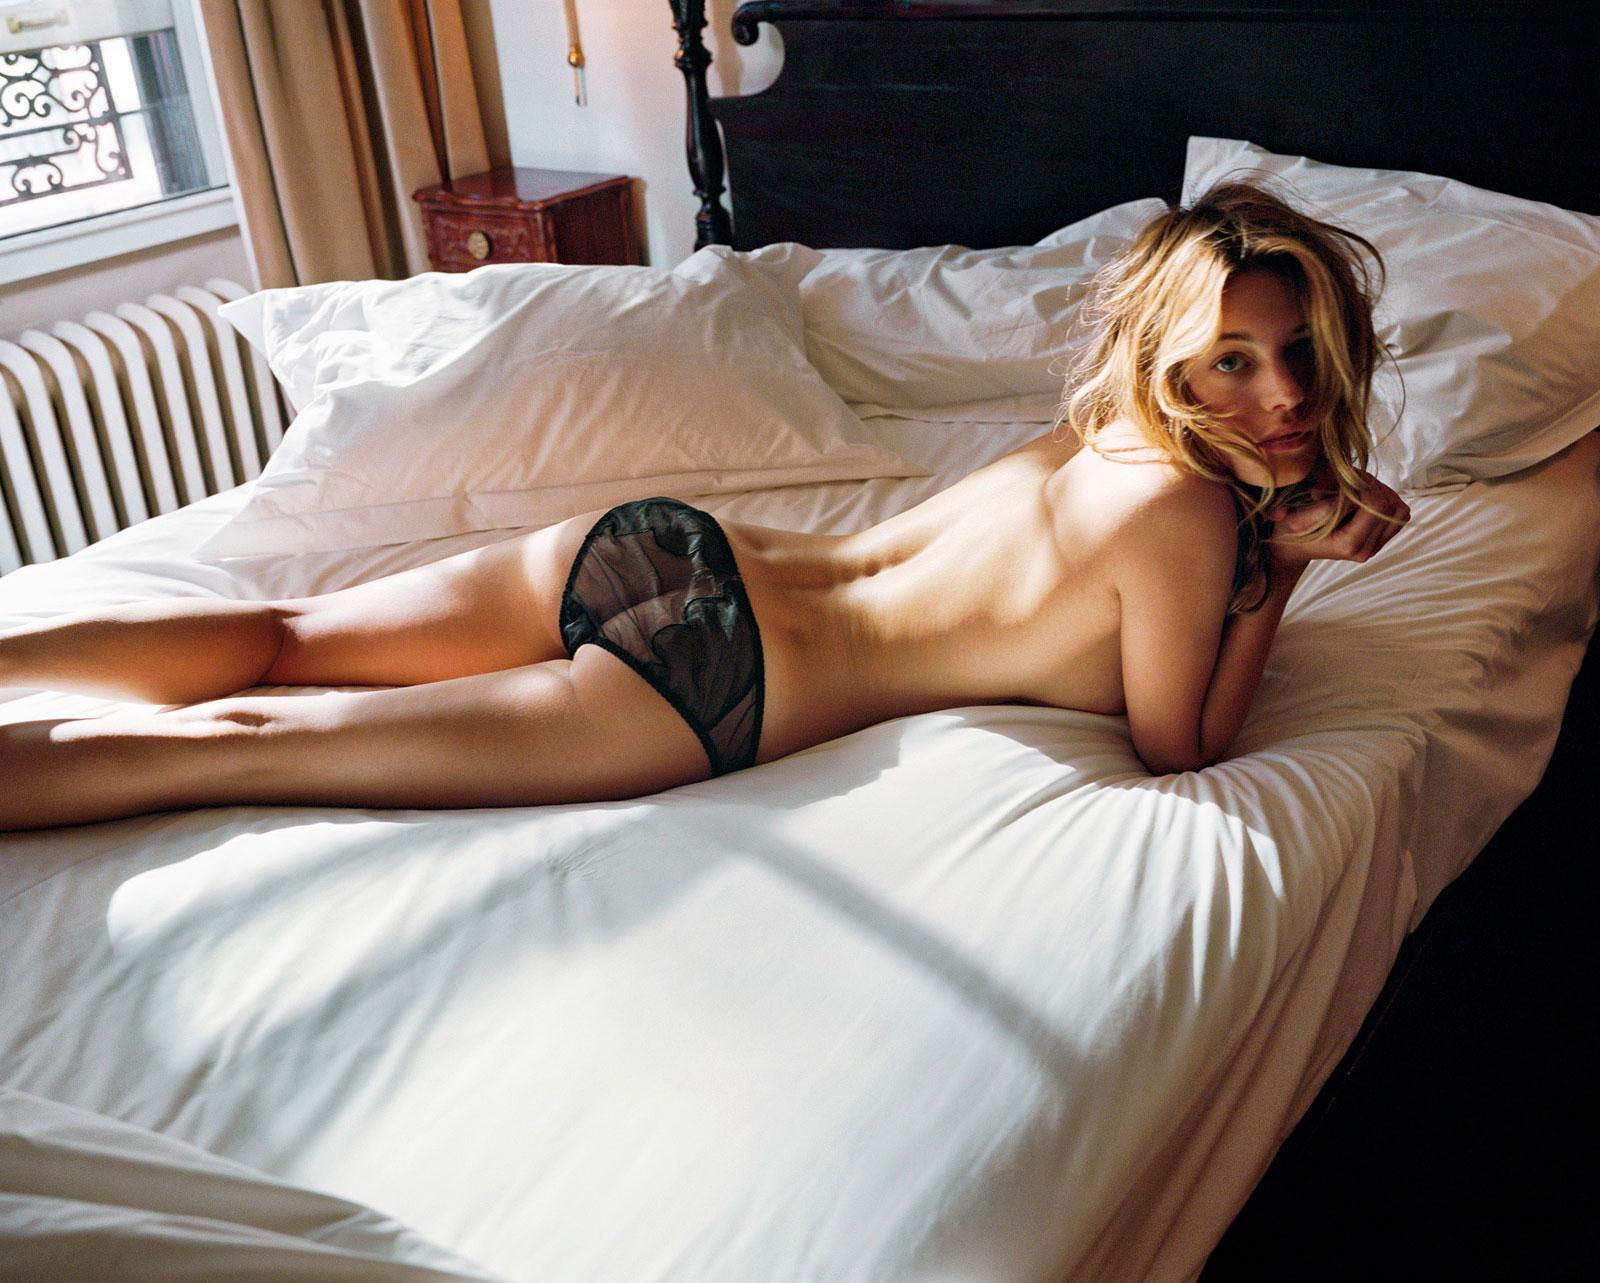 camille rowe by pam hanson